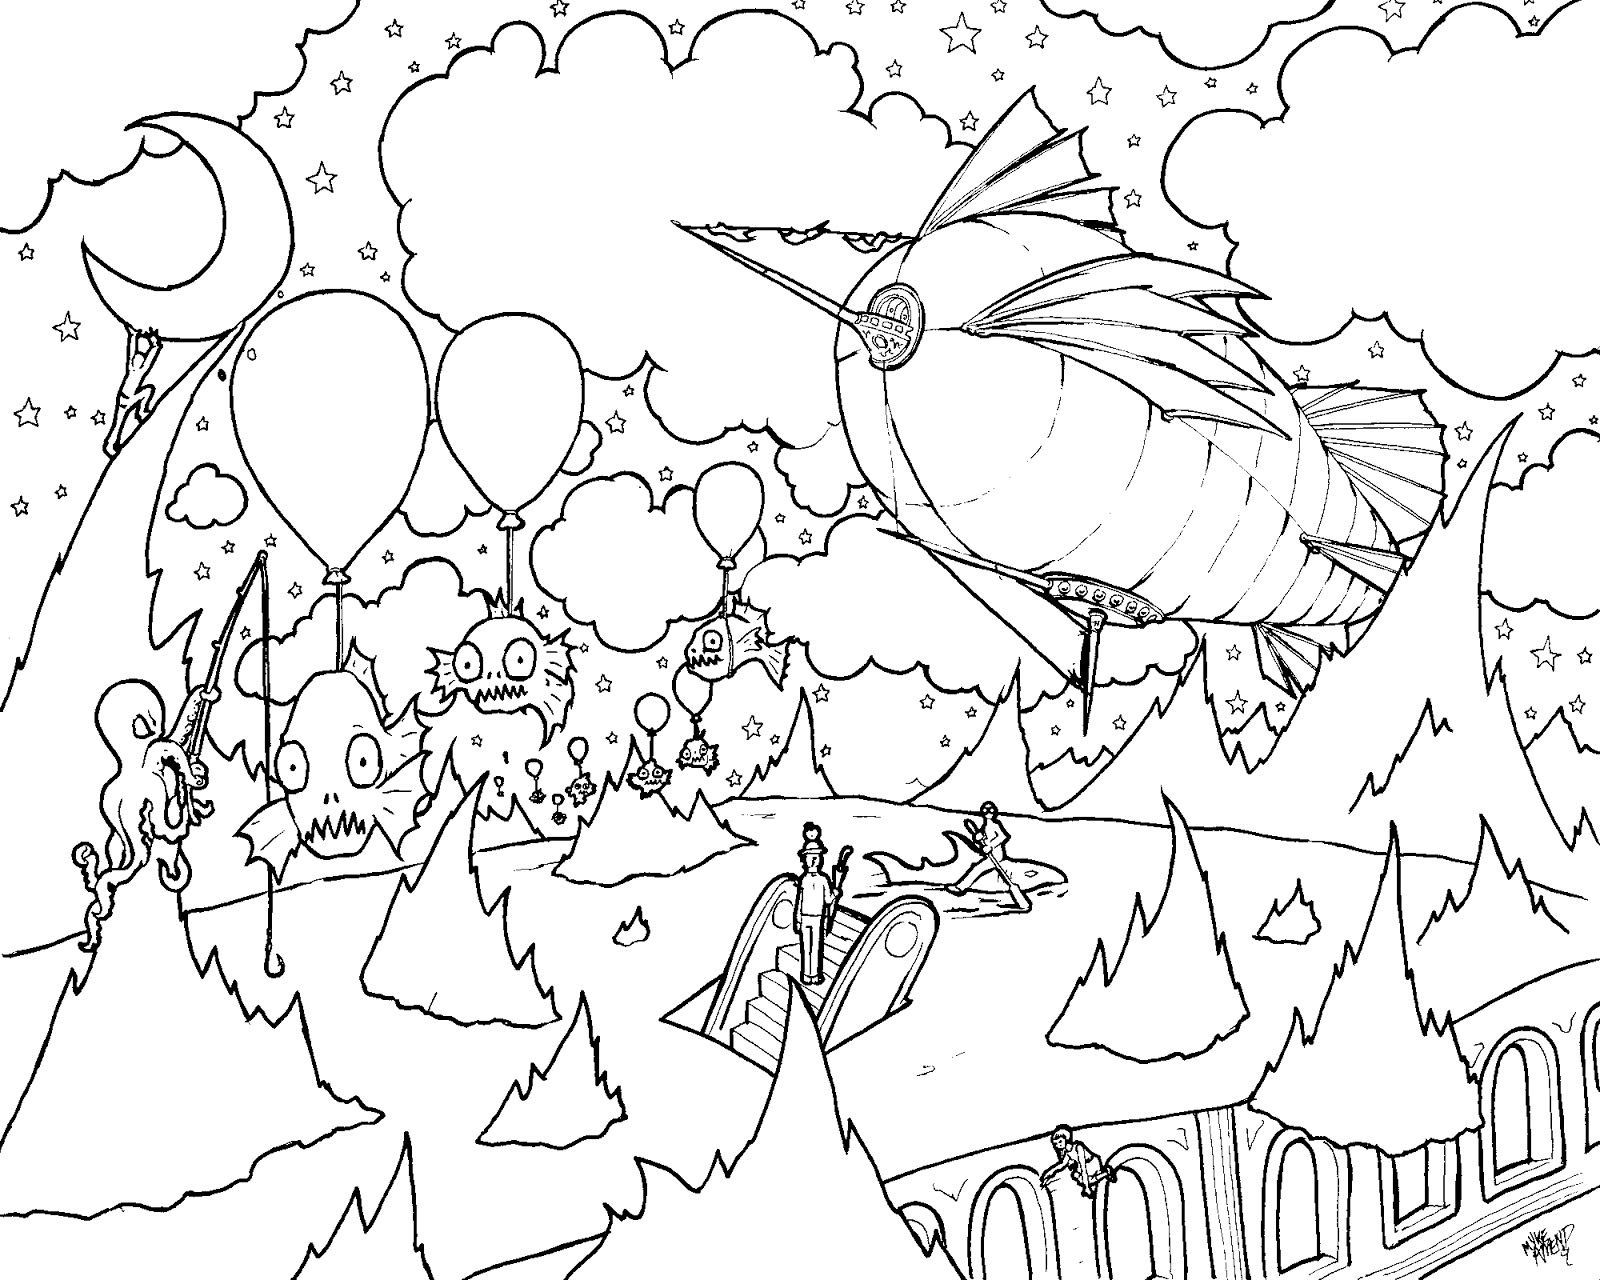 Psychedelic Coloring Pages - Bing Images | Coloring Sheets ...